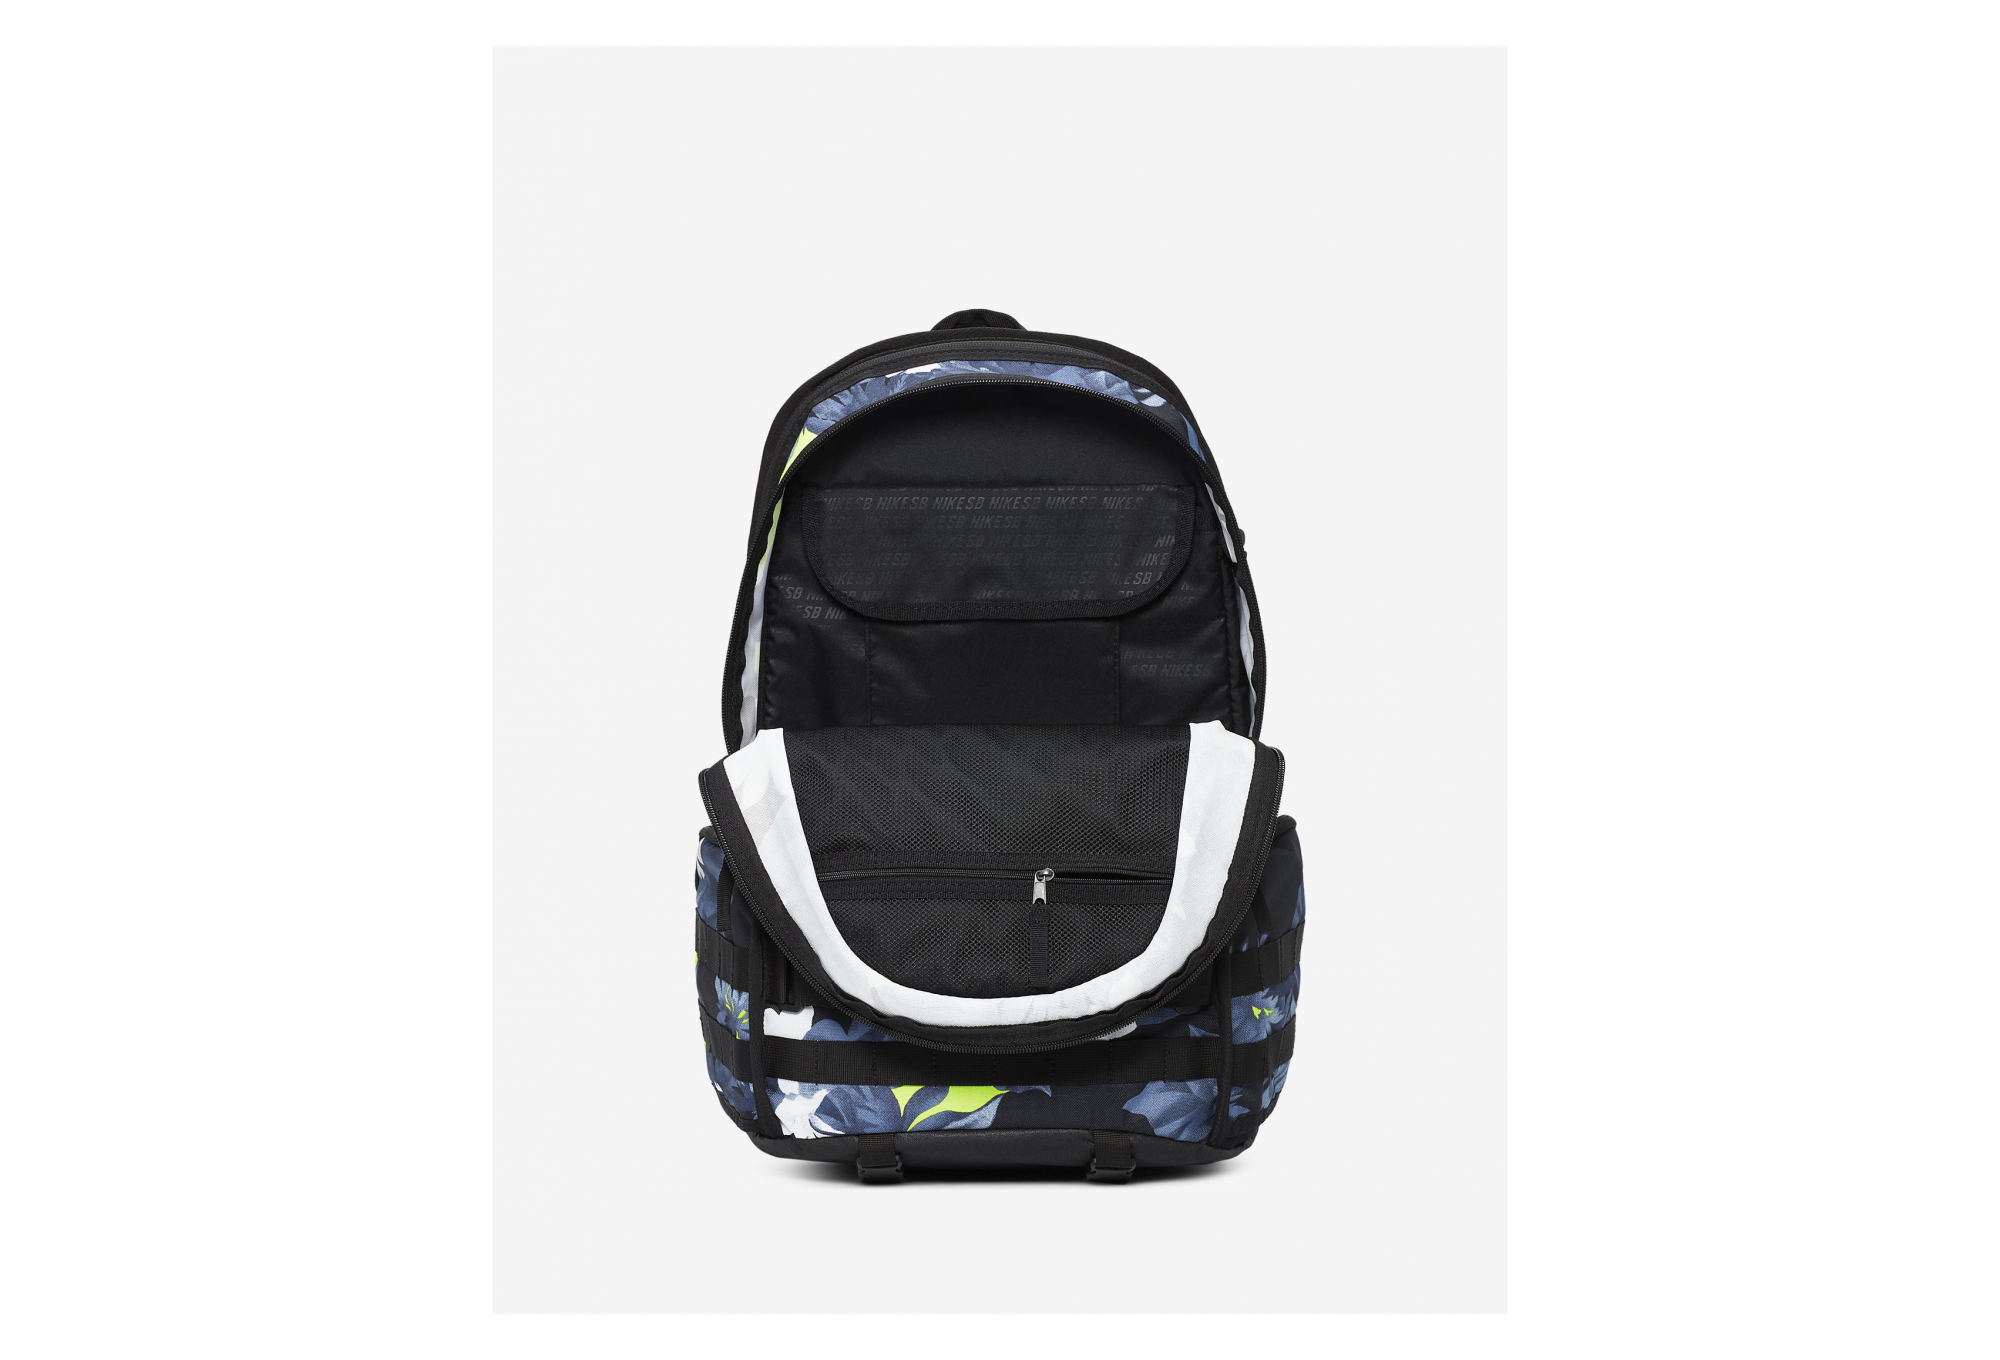 pesado contaminación más y más  Nike SB RPM Backpack Black / Blue | Alltricks.com